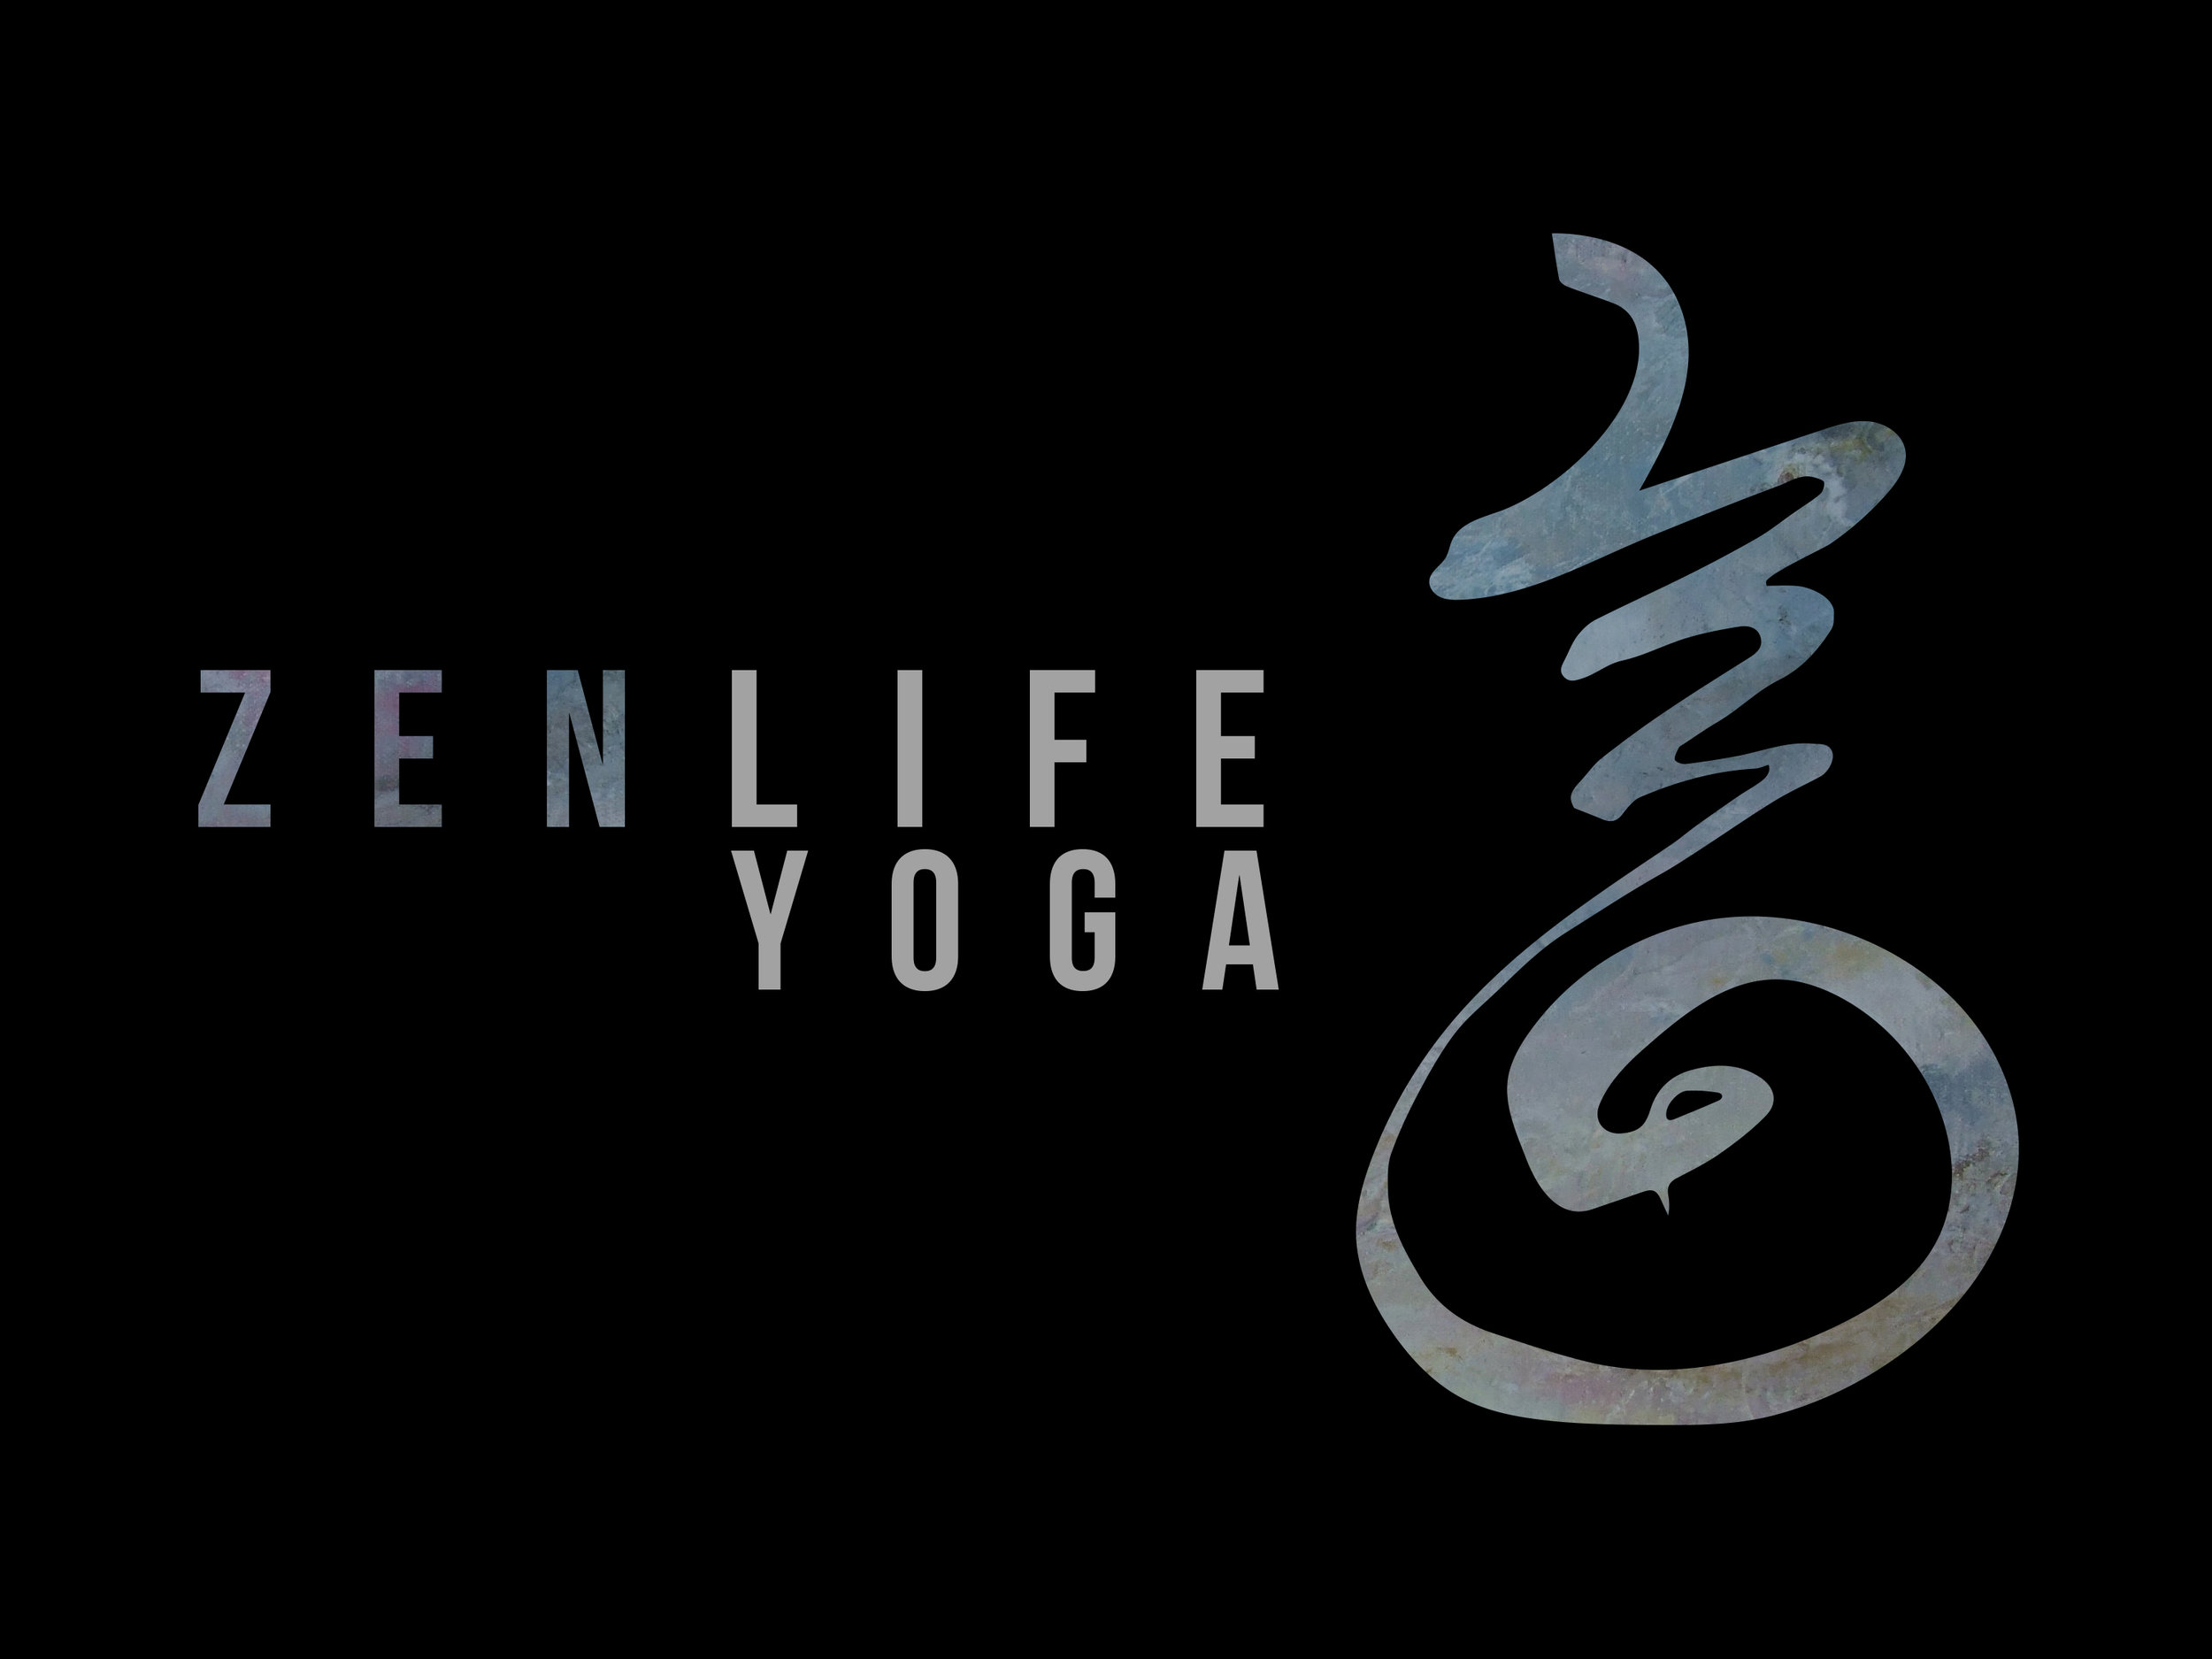 WELCOME TO ZEN LIFE YOGA… - Zen life is a Yoga Studio in Butler Perth WA, our beautiful warehouse space will put your body & mind at ease. Offering well-rounded schedule of yoga, meditation, functional body movement delivering powerful classes.